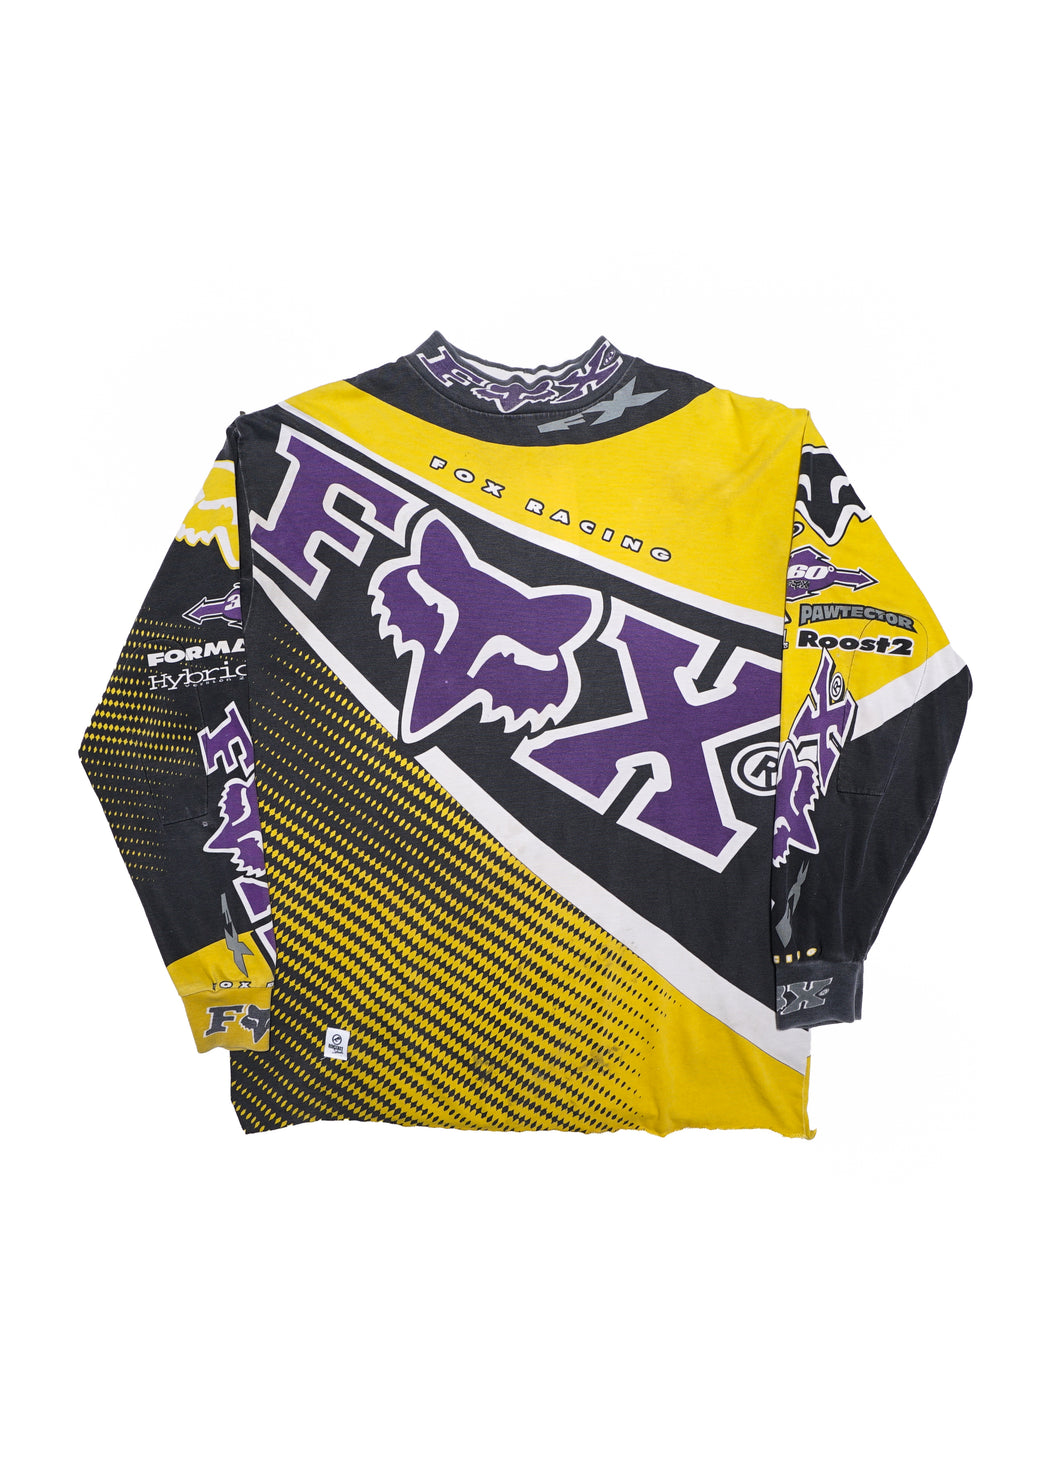 FOX DIRTBIKE LONGSLEEVE //YELLOW